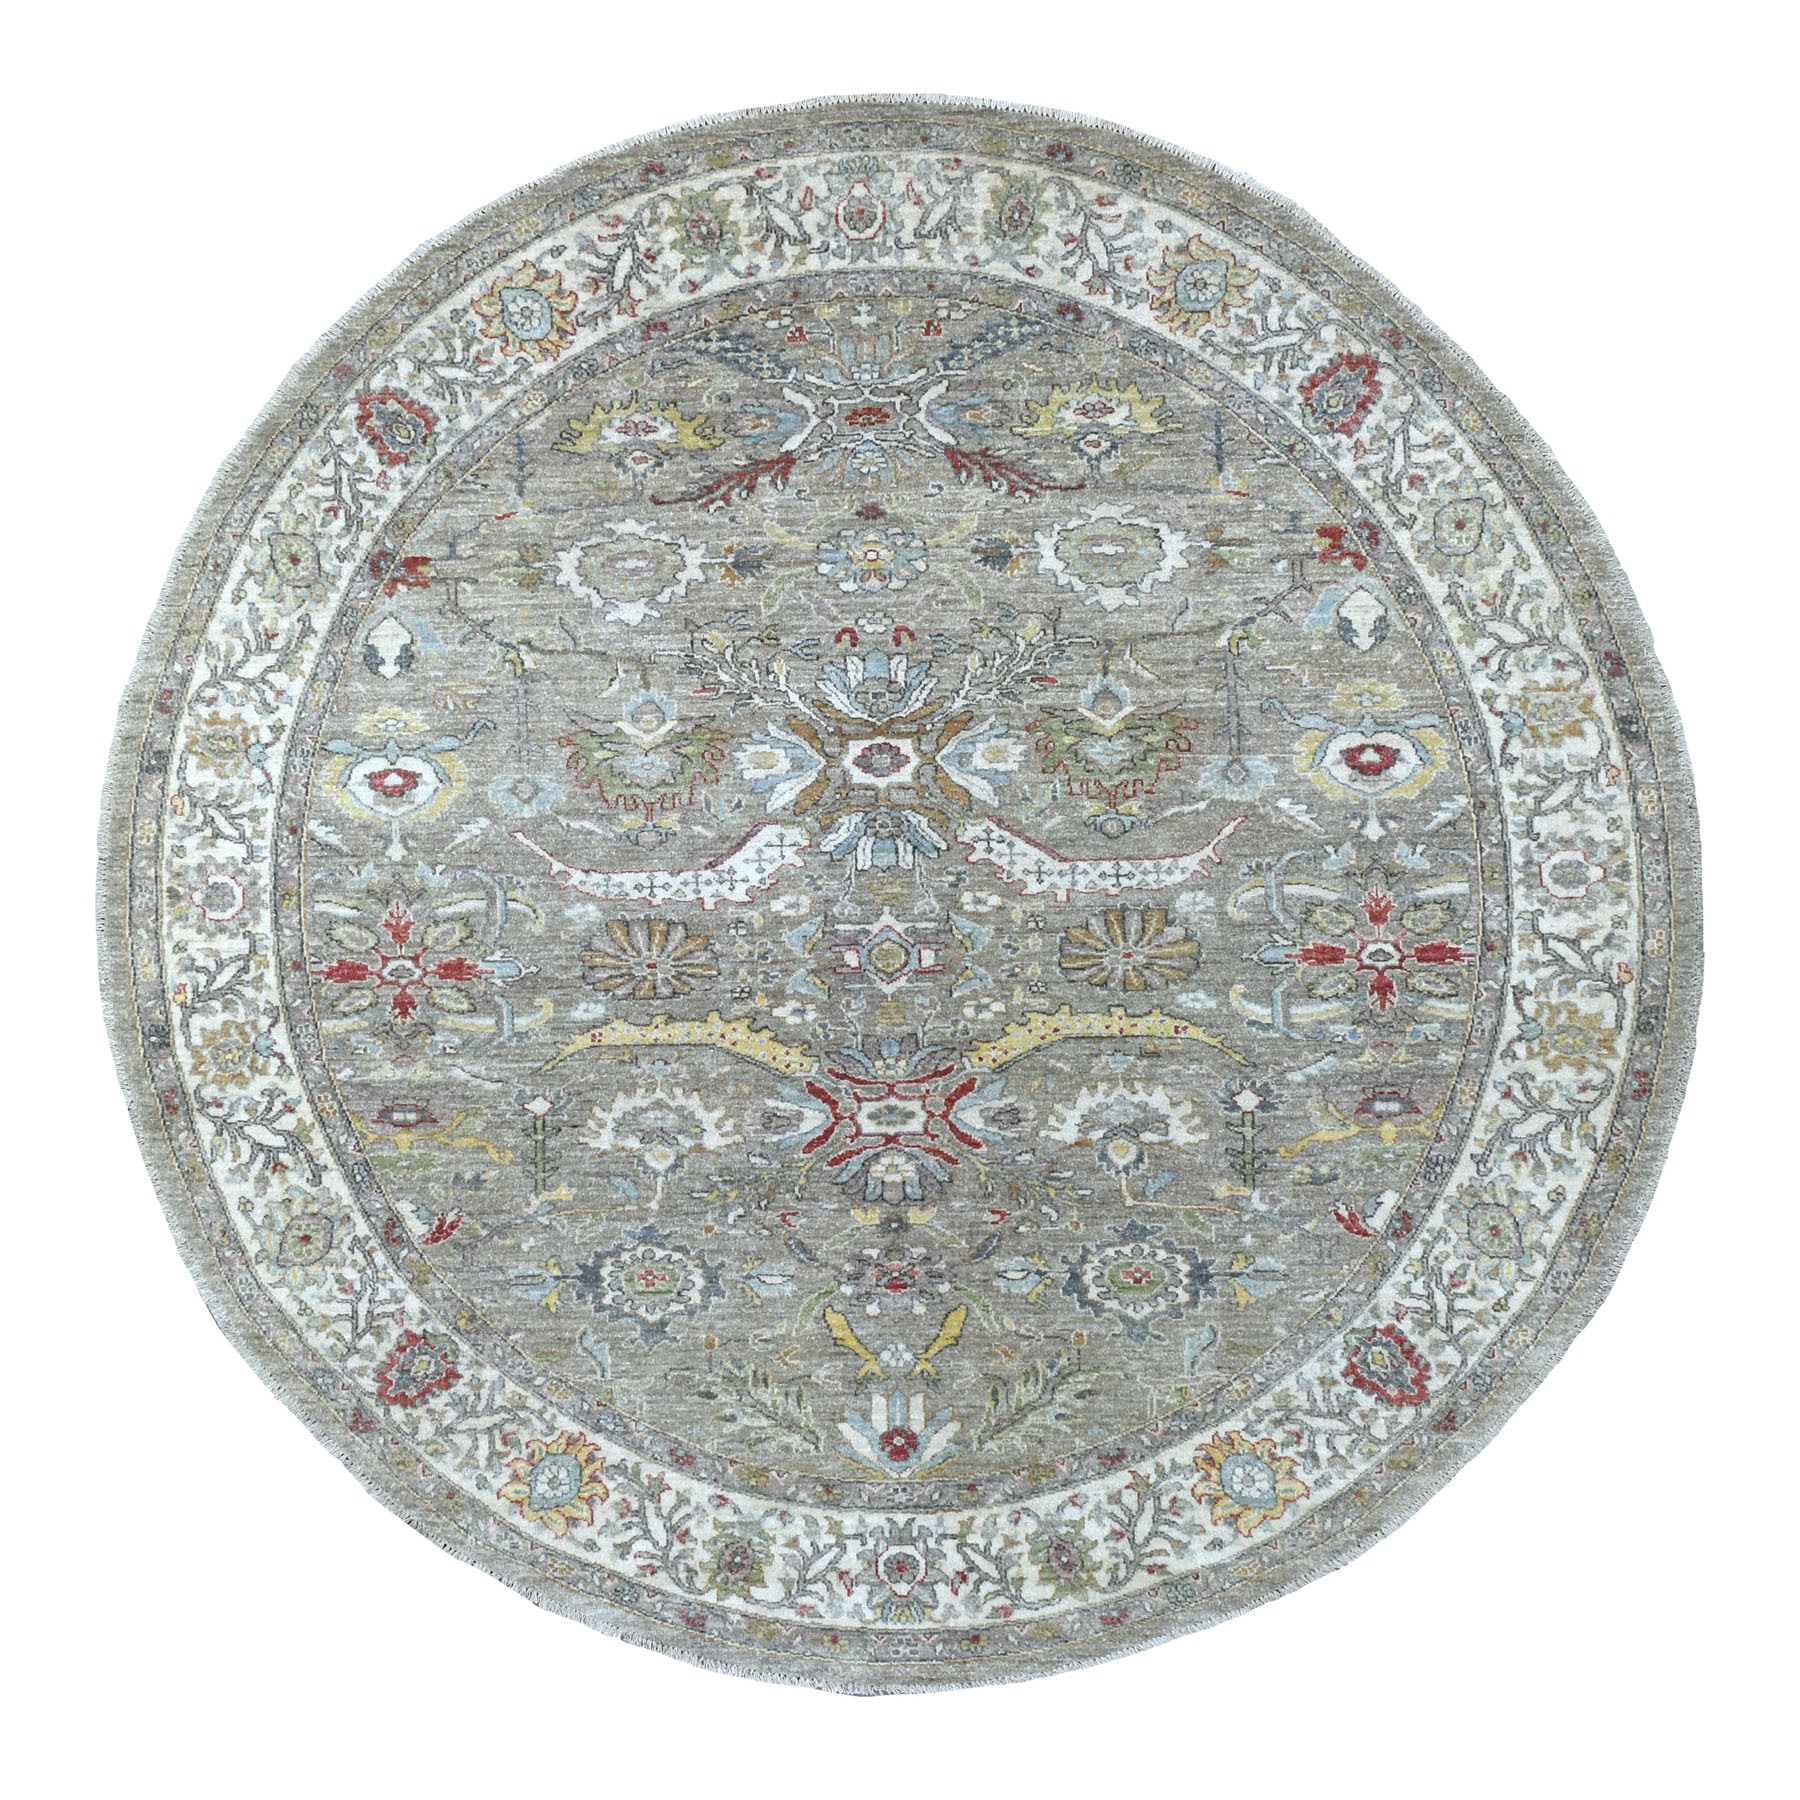 "7'9""x7'10"" Gray Peshawar With Heriz Design Vibrant Wool Hand Knotted Oriental Round Rug"